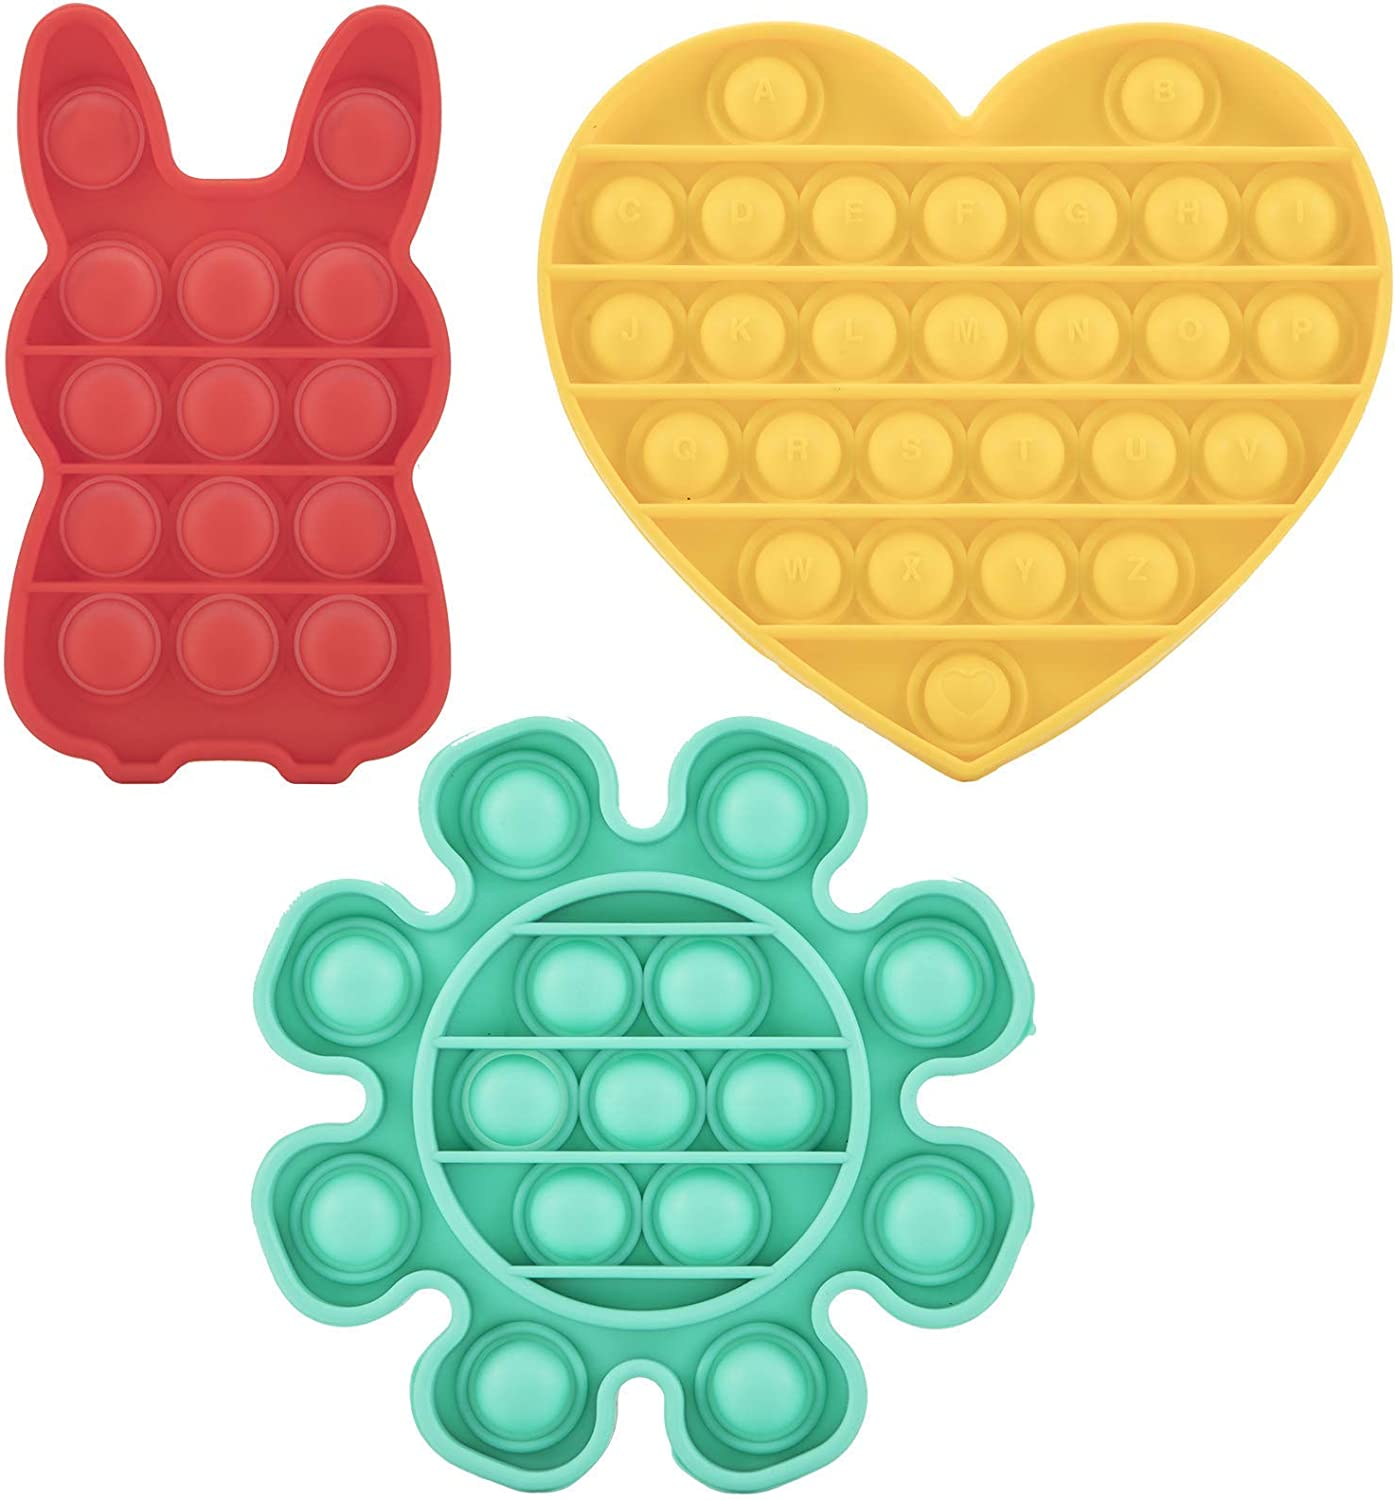 . Red BGFSELF 3PC Push pop Bubble Fidget Sensory Toy,for Relieve Stress Cure People with Autism,for The Young and Kids